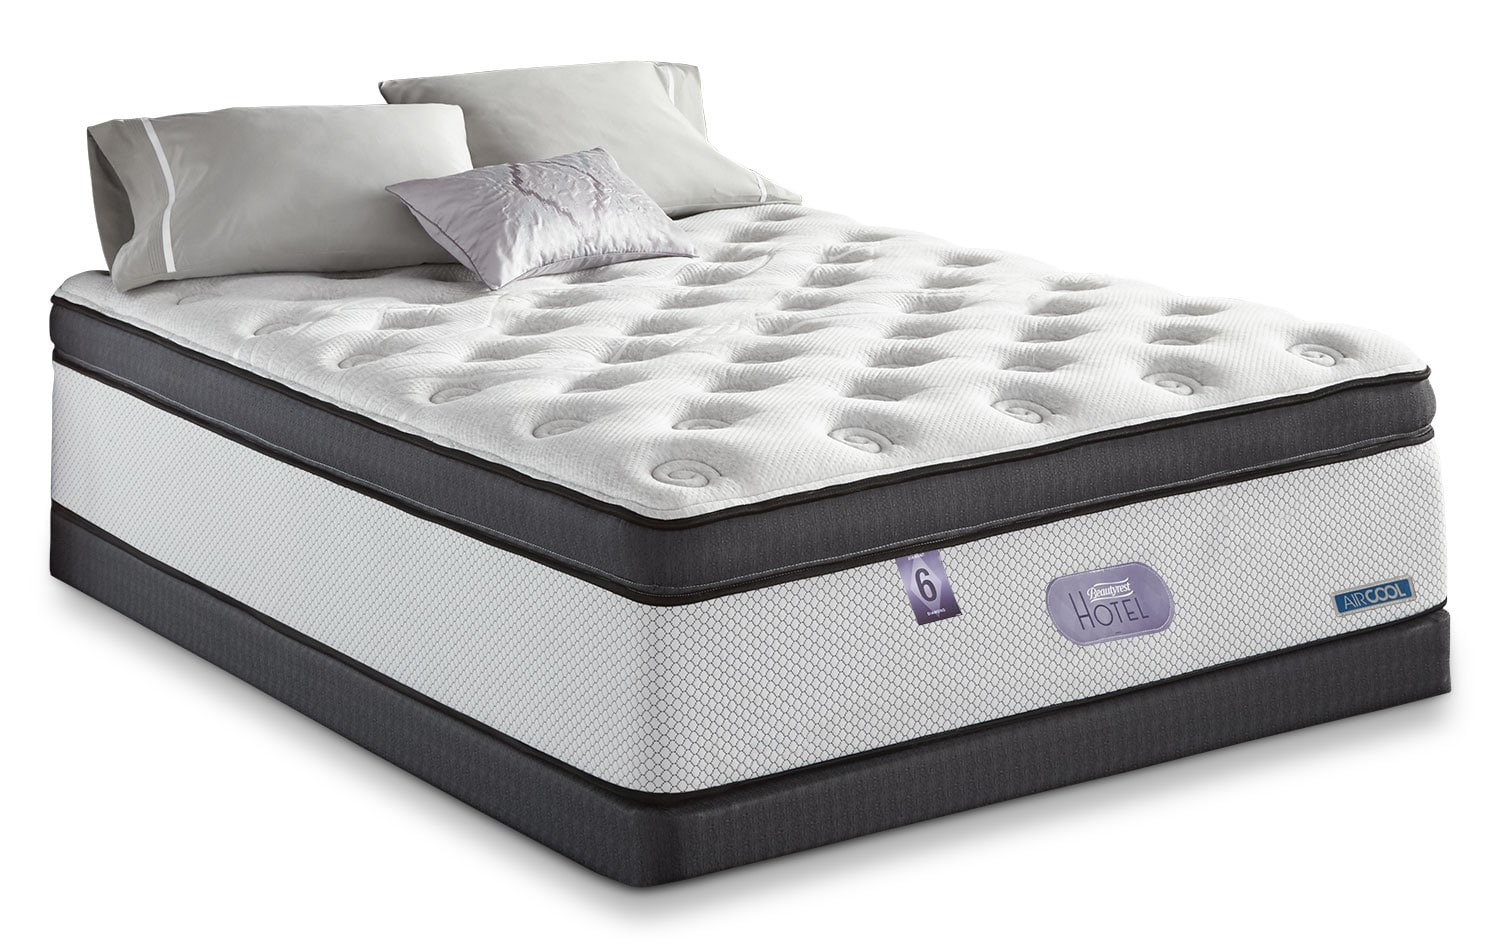 Simmons Beautyrest® Hotel Diamond 6.0 Ultra Comfort Top Plush Full Mattress Set